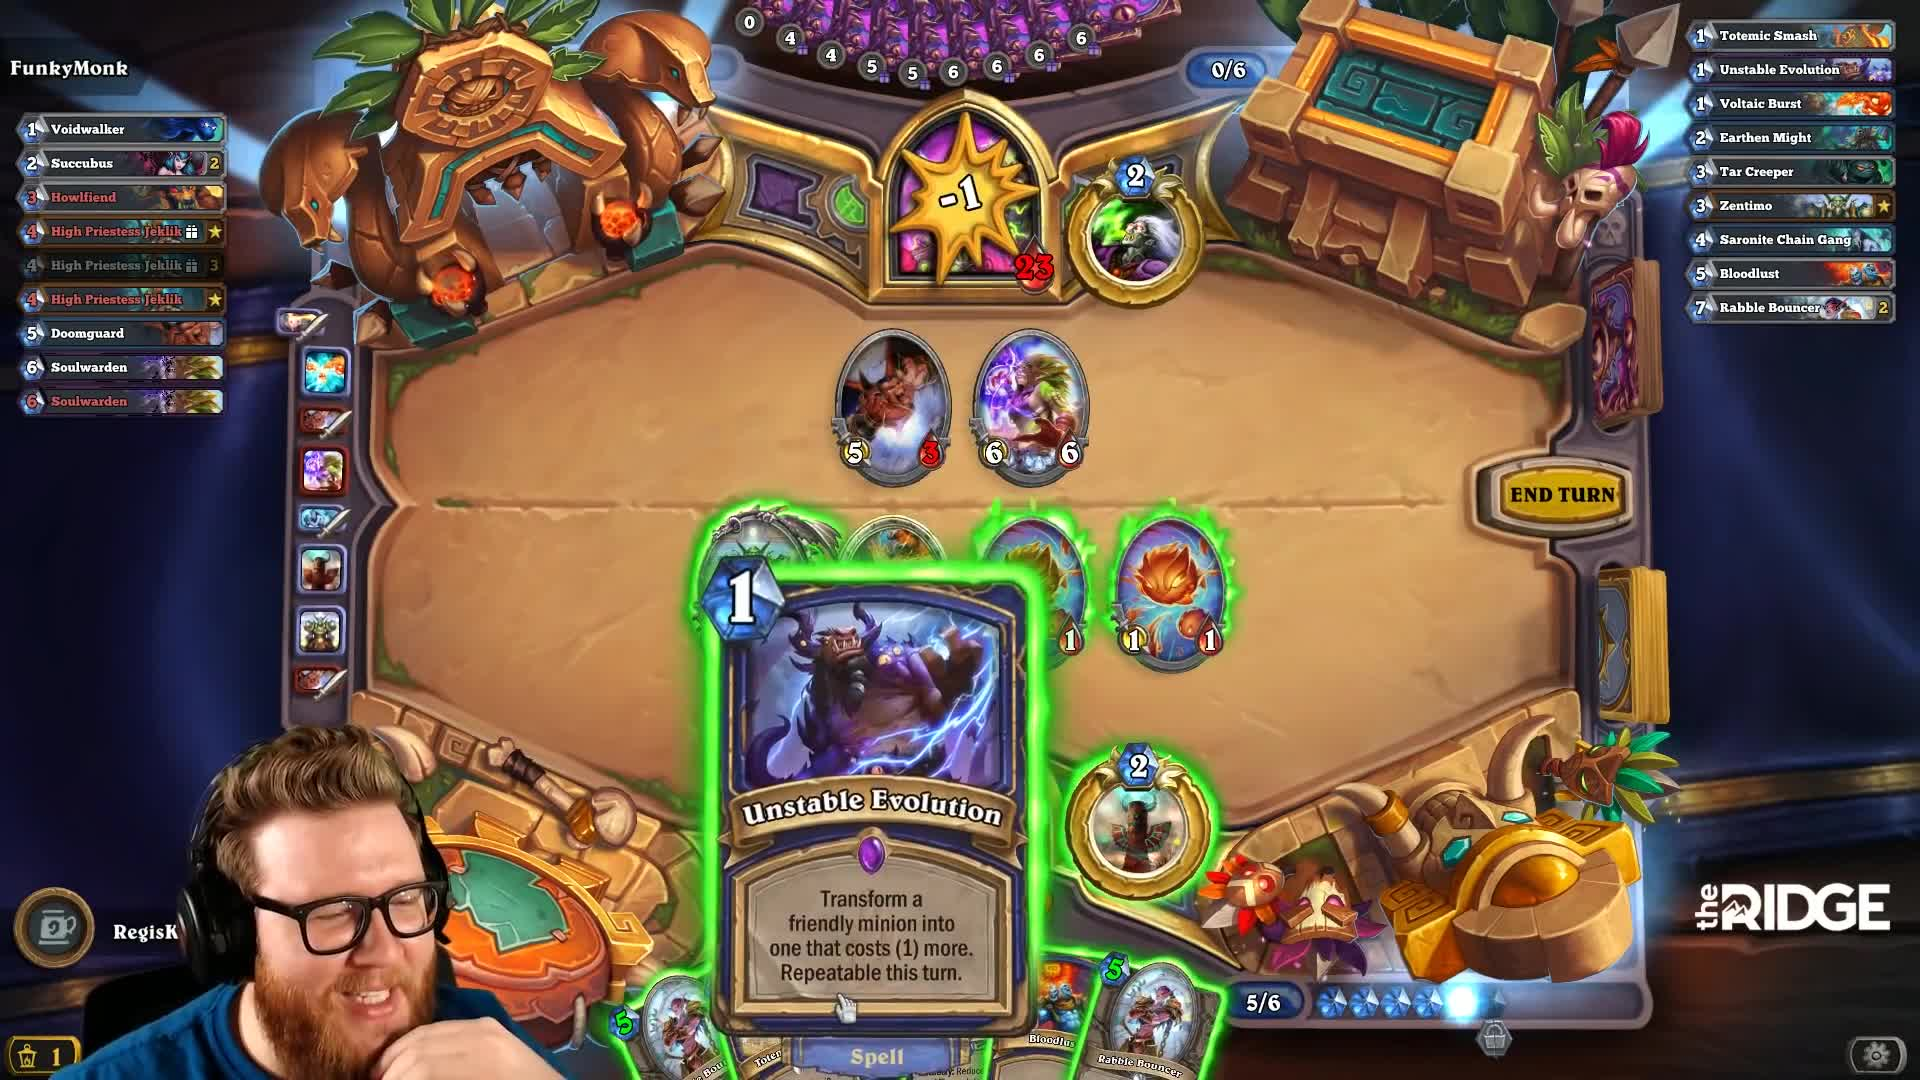 Best Hearthstone Game, Game Highlight, Hearthstone, Hearthstone Highlights, Hearthstone Kripp, Hearthstone Trolden, Hearthstone: Heroes of Warcraft, Highlight, Zentimo, Zentimo Deck, The Evolution of Zentimo - Hearthstone GIFs